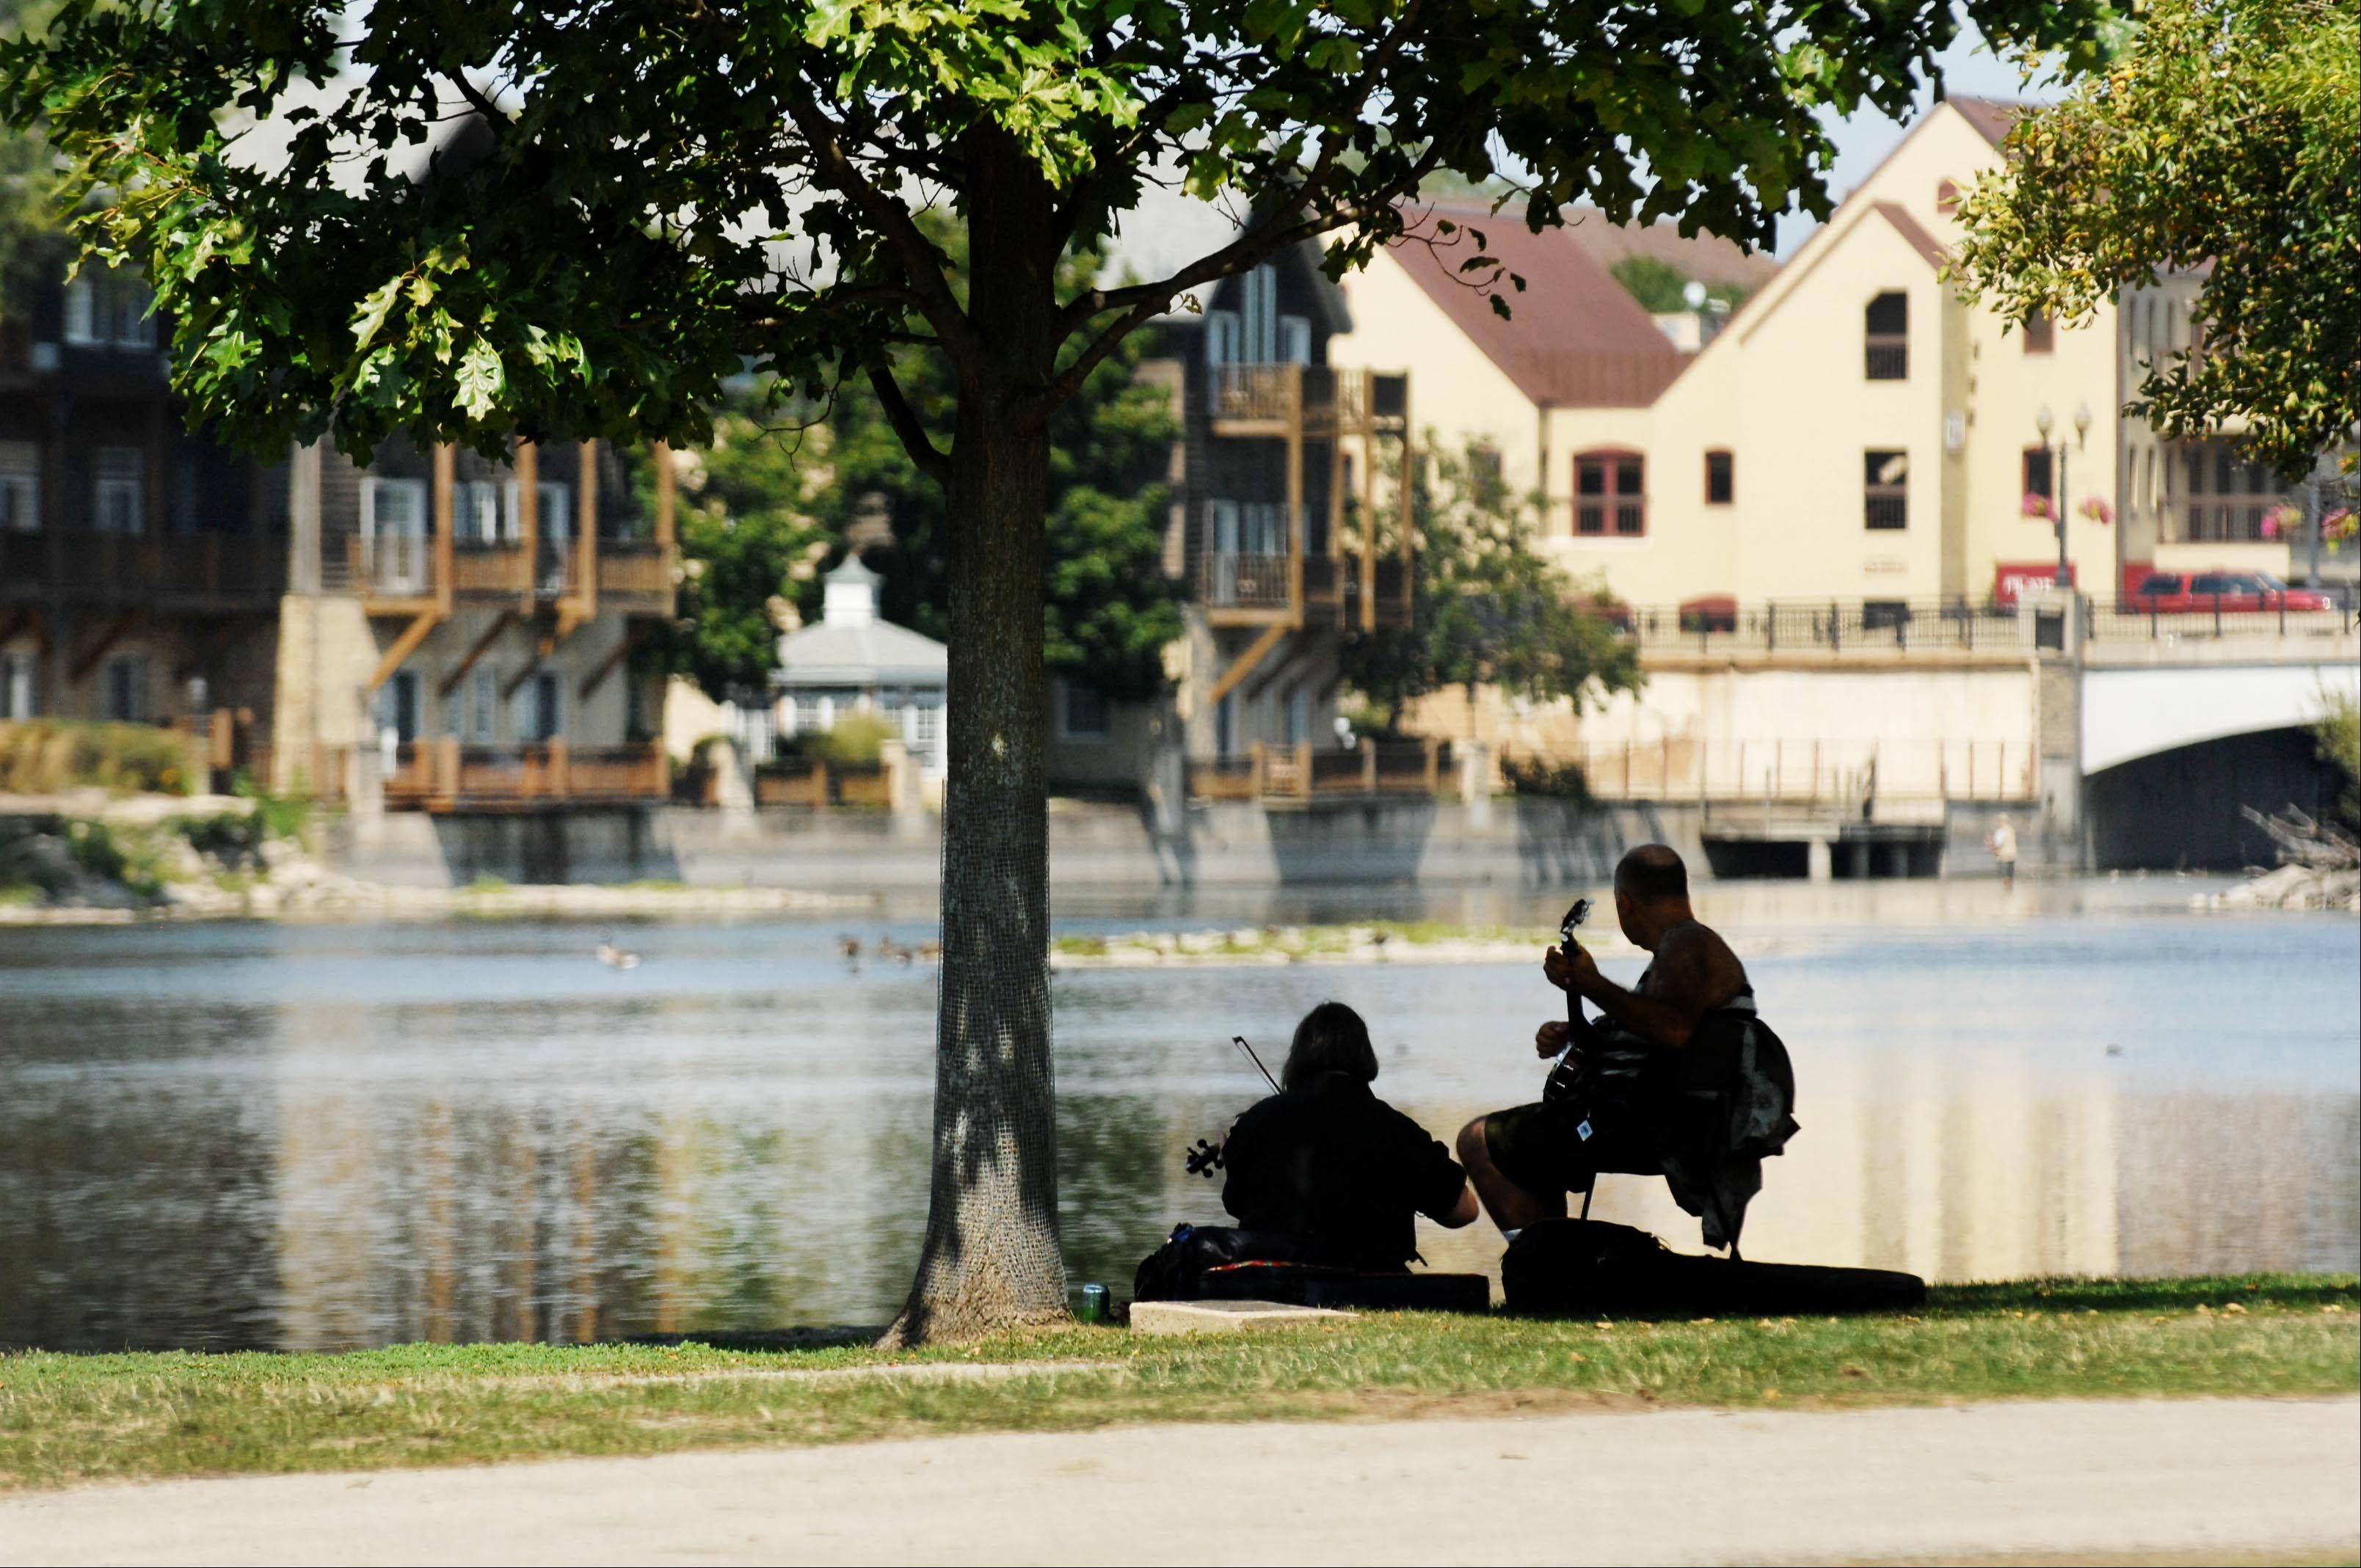 Tony Scarimbolo, of Harwood Heights, plays the banjo while Cyndy Richardson, of Wilmette, plays the fiddle in the shade by the Fox River Monday.